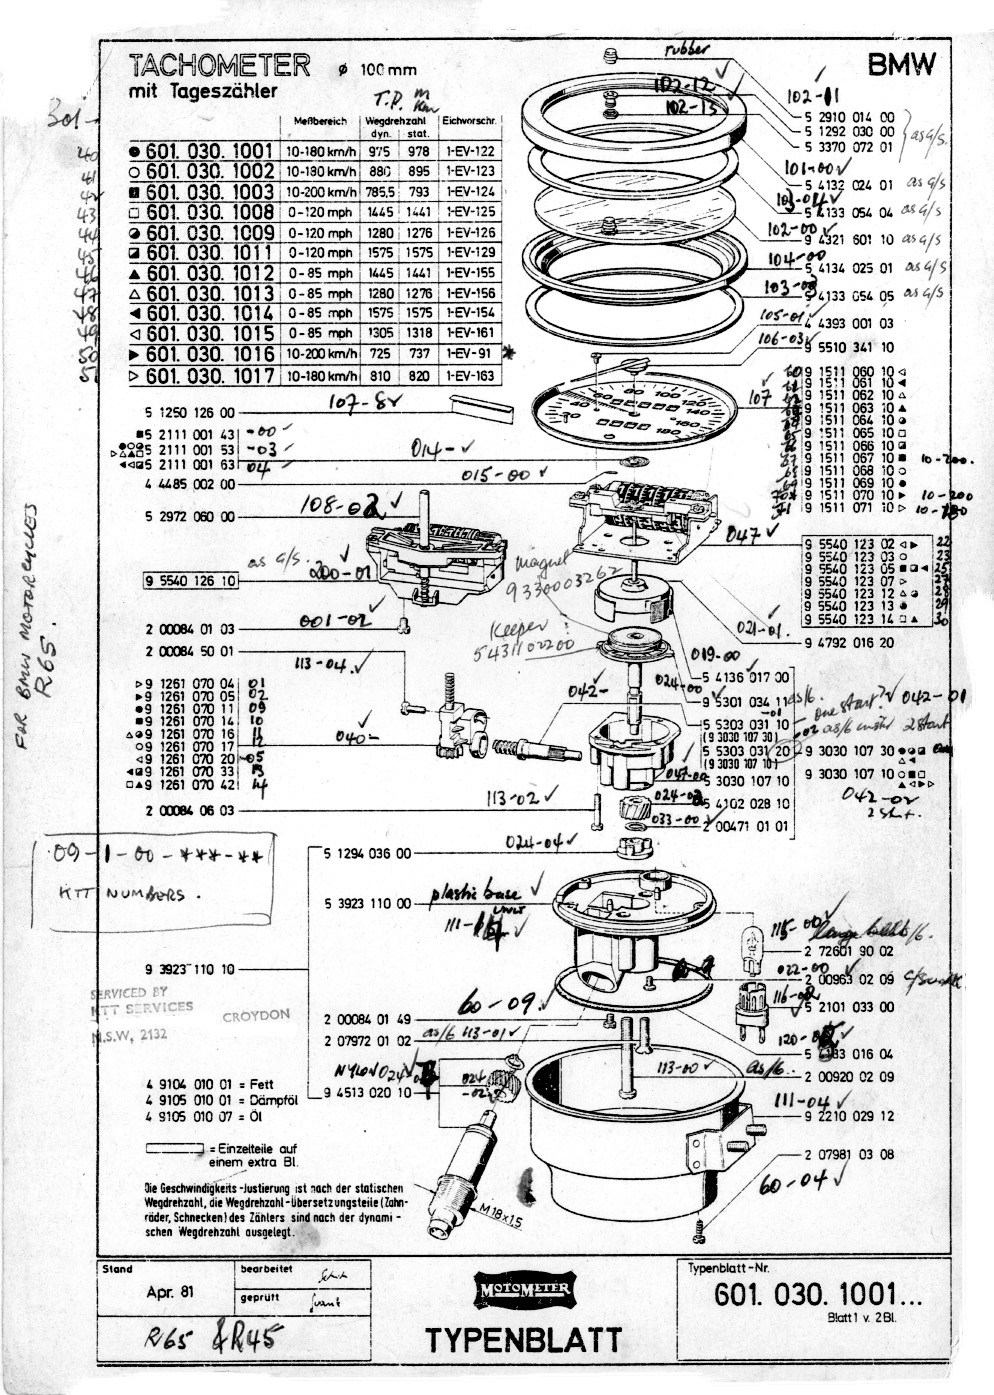 Wiring Diagram Bmw R65ls BMW R60 Wiring Diagram ~ ODICIS